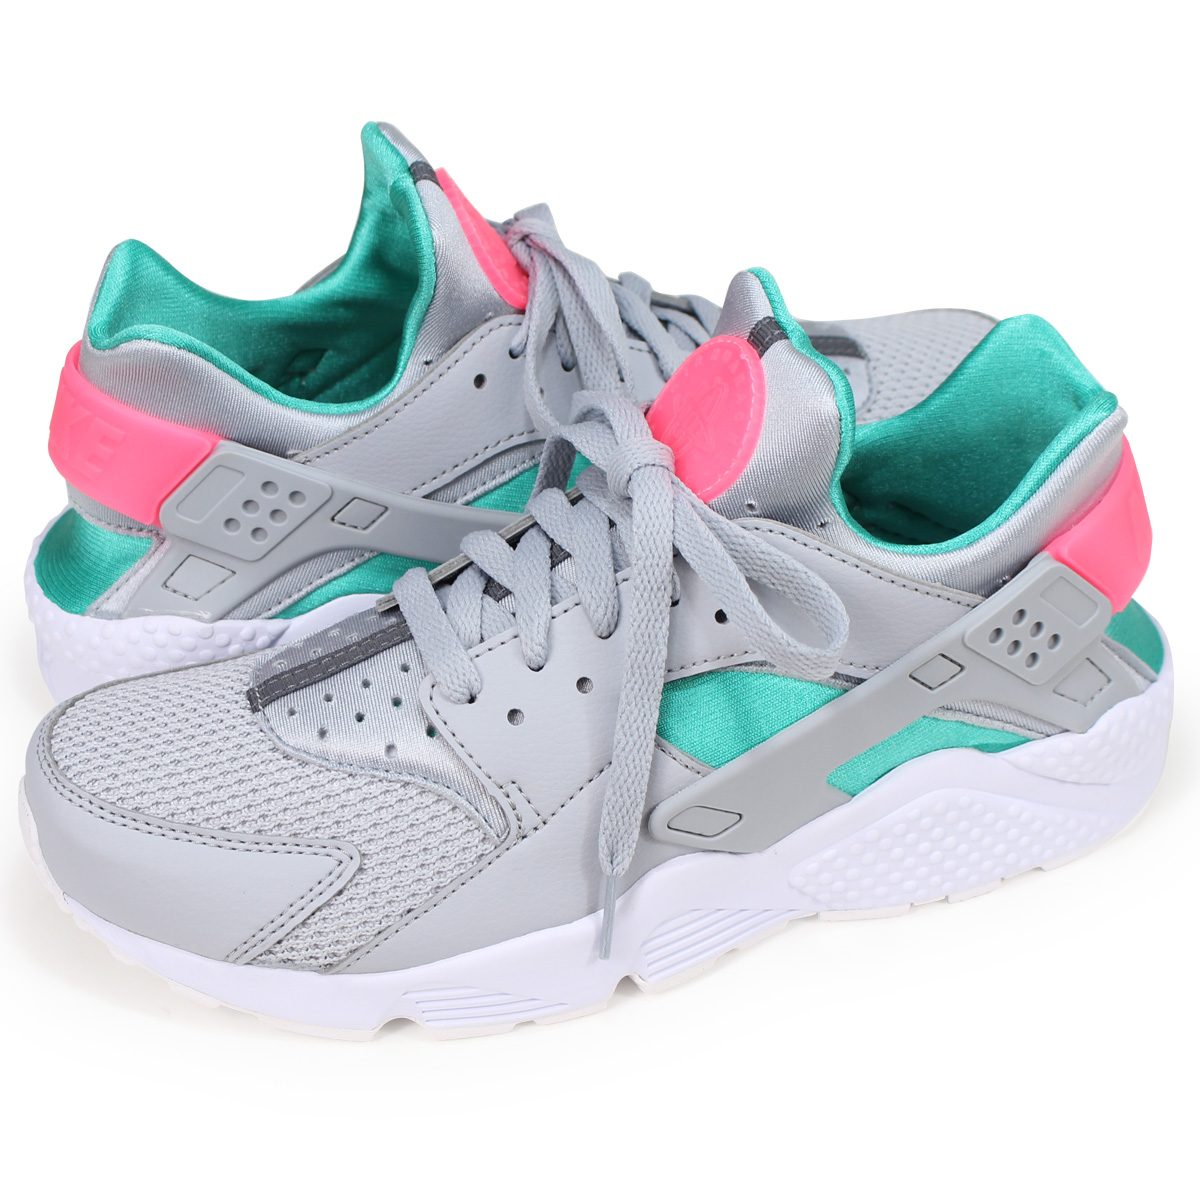 huge selection of 80b4b eab14 NIKE AIR HUARACHE RUN ナイキエアハラチランスニーカーメンズ 318,429-053 gray  load planned  Shinnyu load in reservation product 6 29 containing